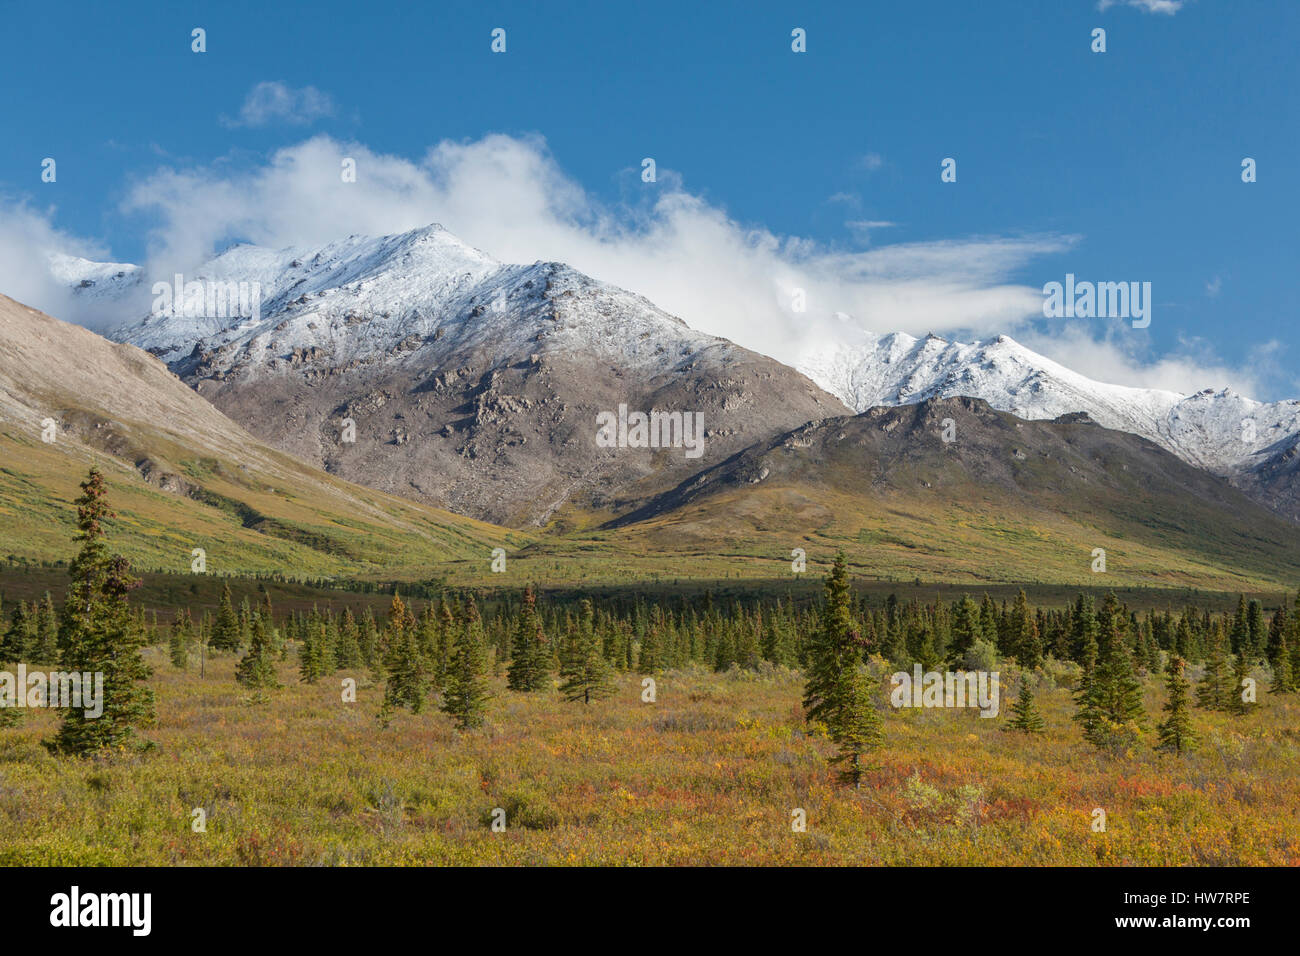 Termination dust on the Alaska Range, Denali National Park, Alaska. - Stock Image